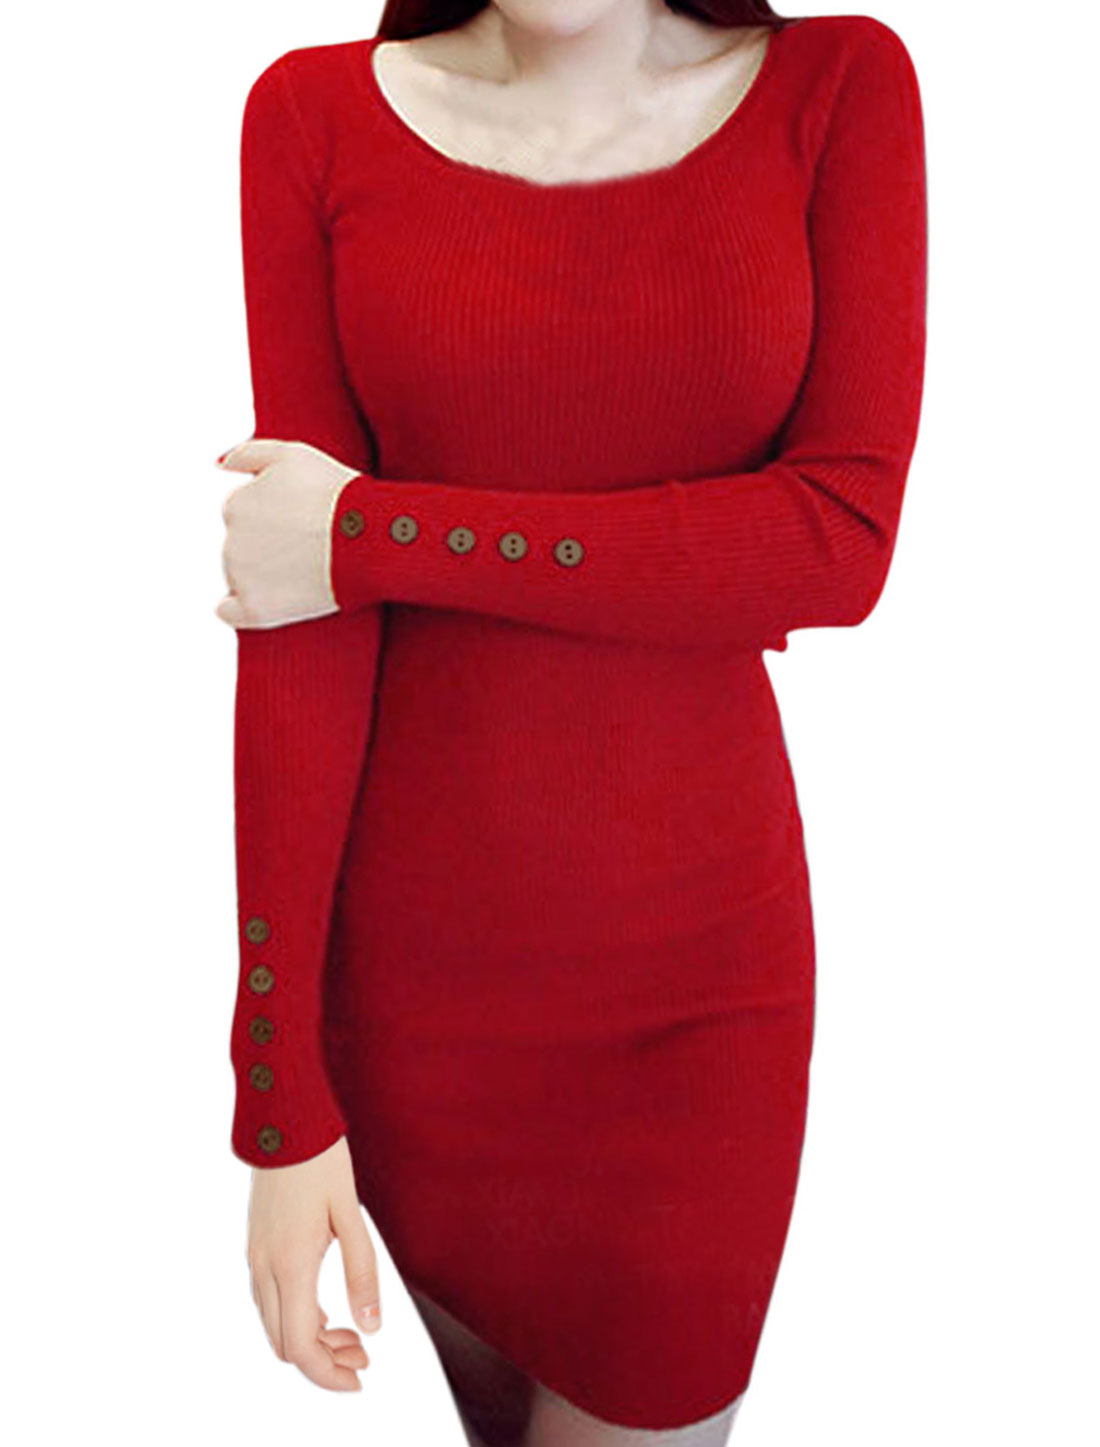 Ladies Long Sleeves Button Decor Casual Knit Sheath Dress Red S